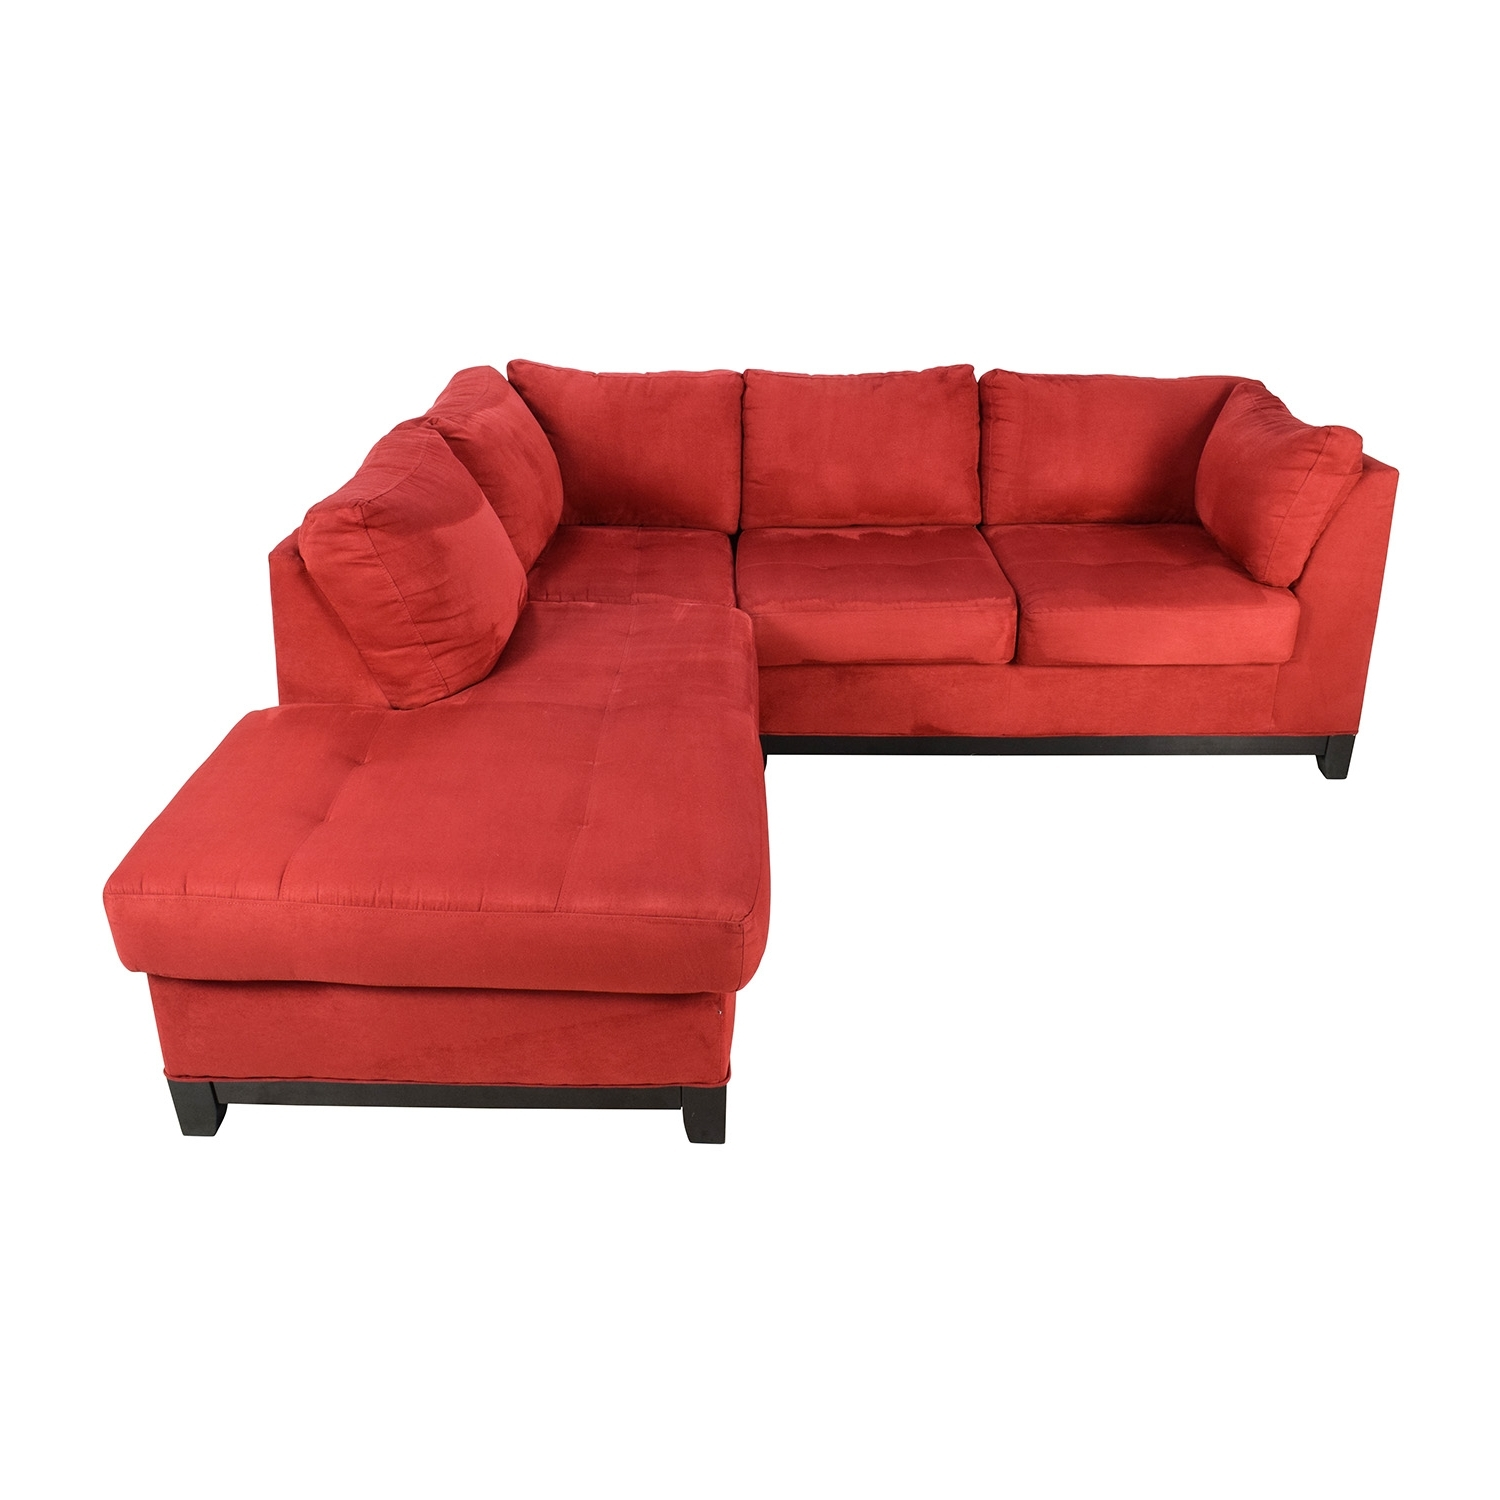 [%67% Off – Raymour And Flanigan Raymour & Flanigan Zella Red Inside Most Recently Released Sectional Sofas At Raymour And Flanigan|Sectional Sofas At Raymour And Flanigan Regarding Most Recent 67% Off – Raymour And Flanigan Raymour & Flanigan Zella Red|Most Recently Released Sectional Sofas At Raymour And Flanigan Inside 67% Off – Raymour And Flanigan Raymour & Flanigan Zella Red|Famous 67% Off – Raymour And Flanigan Raymour & Flanigan Zella Red Within Sectional Sofas At Raymour And Flanigan%] (View 4 of 15)